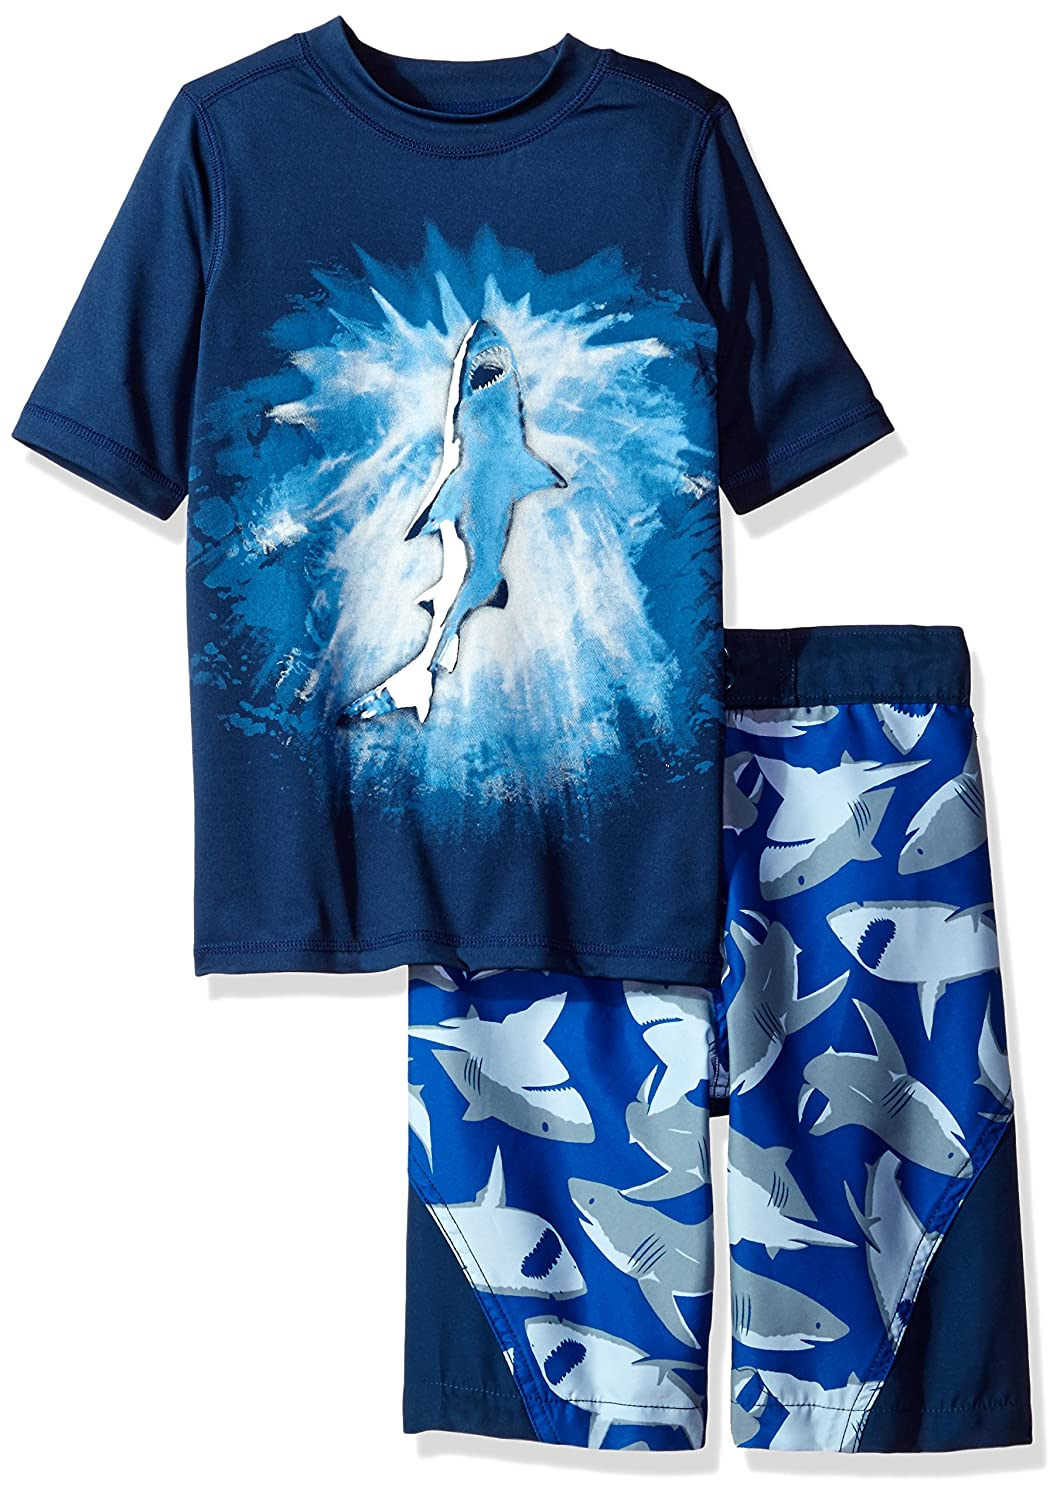 The Children's Place Boys' Rashguard and Swim Trunks Set Captain Navy XS (4) 2082779001